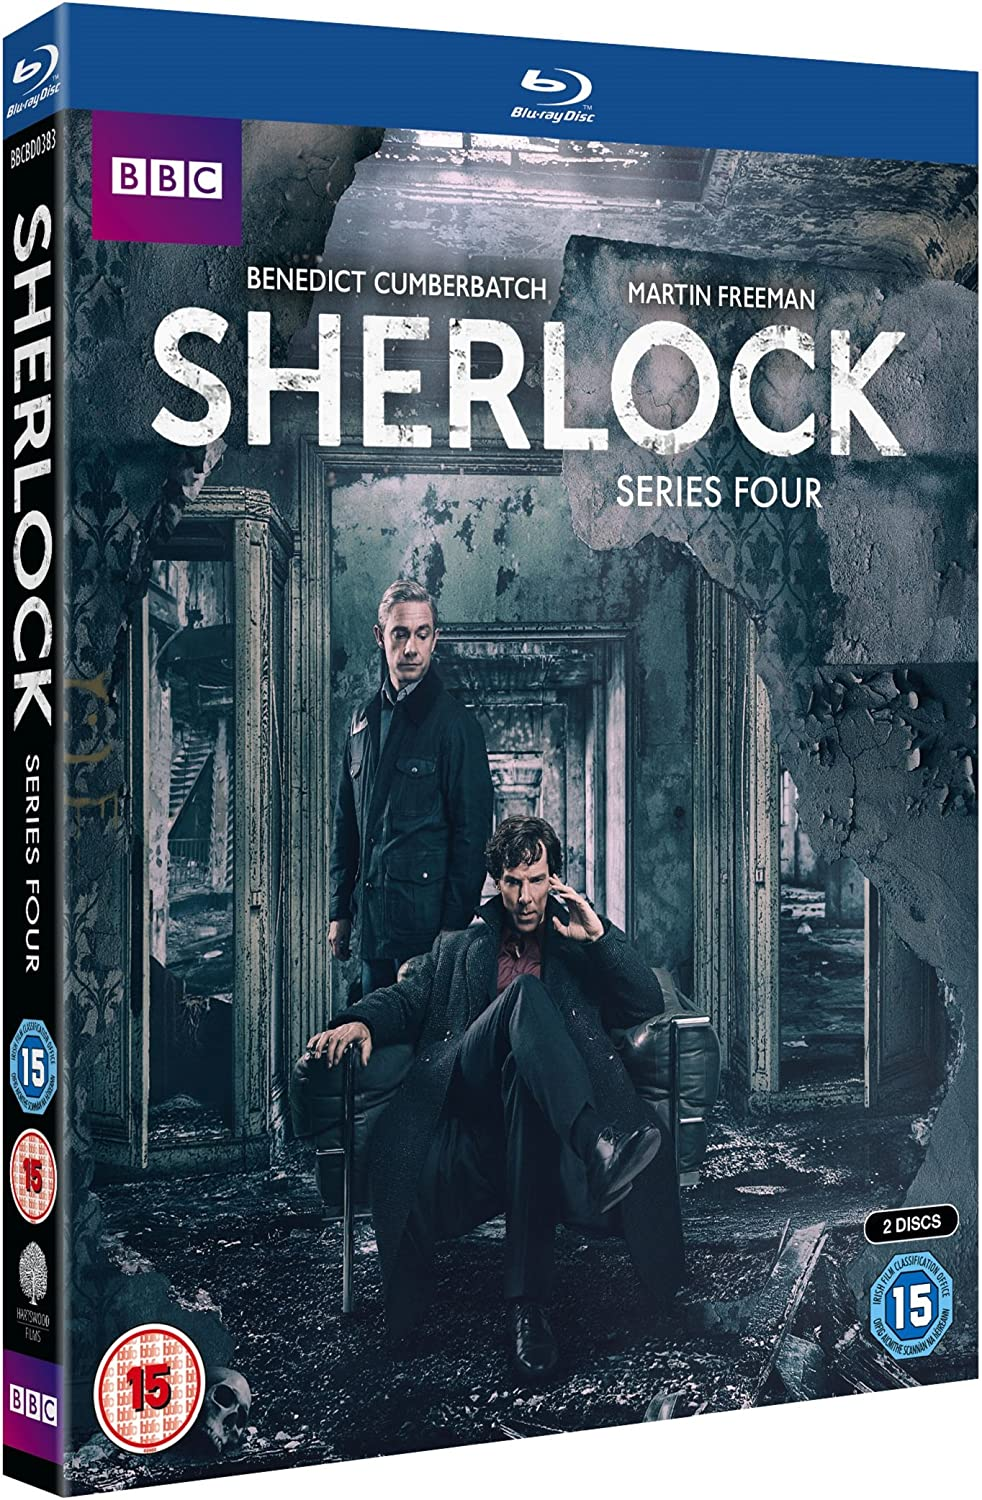 Sherlock - Series 4 [Blu-ray] [2016]: Amazon.co.uk: Benedict ...